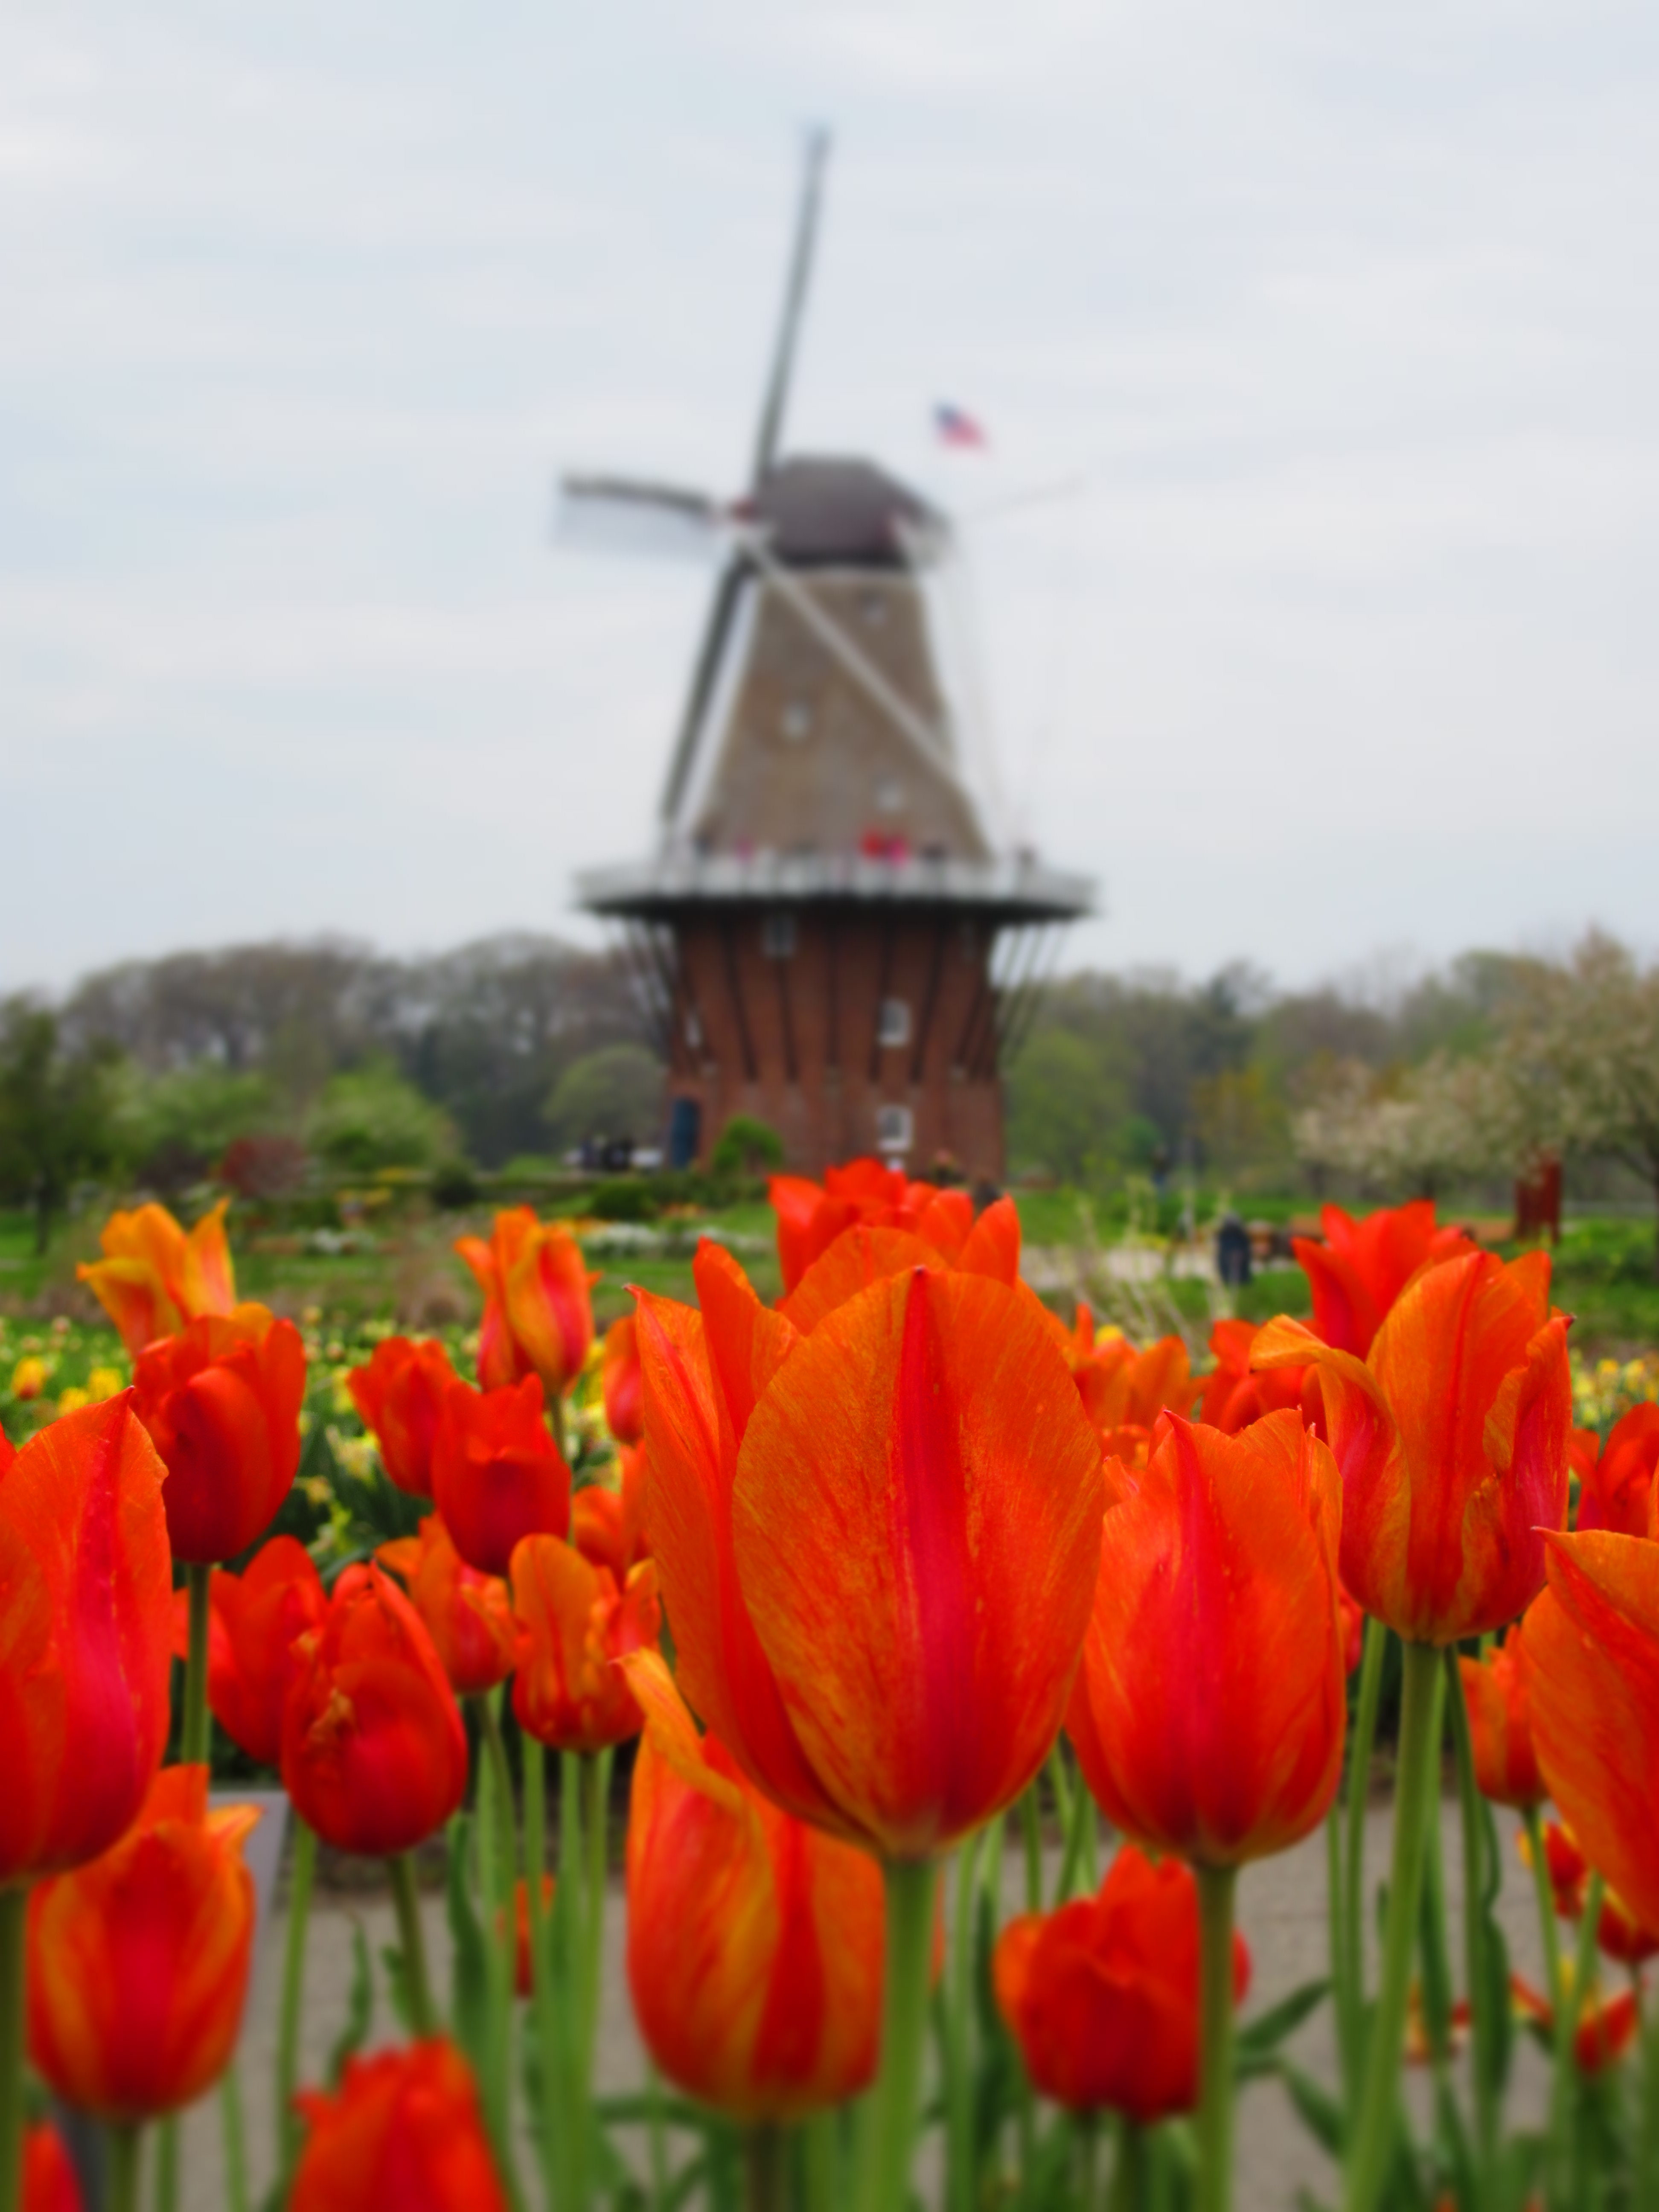 Orange flowers cupped against a slightly overcast sky, are in focus against a background of a windmill amidst yellow flowers and green manicured trees.